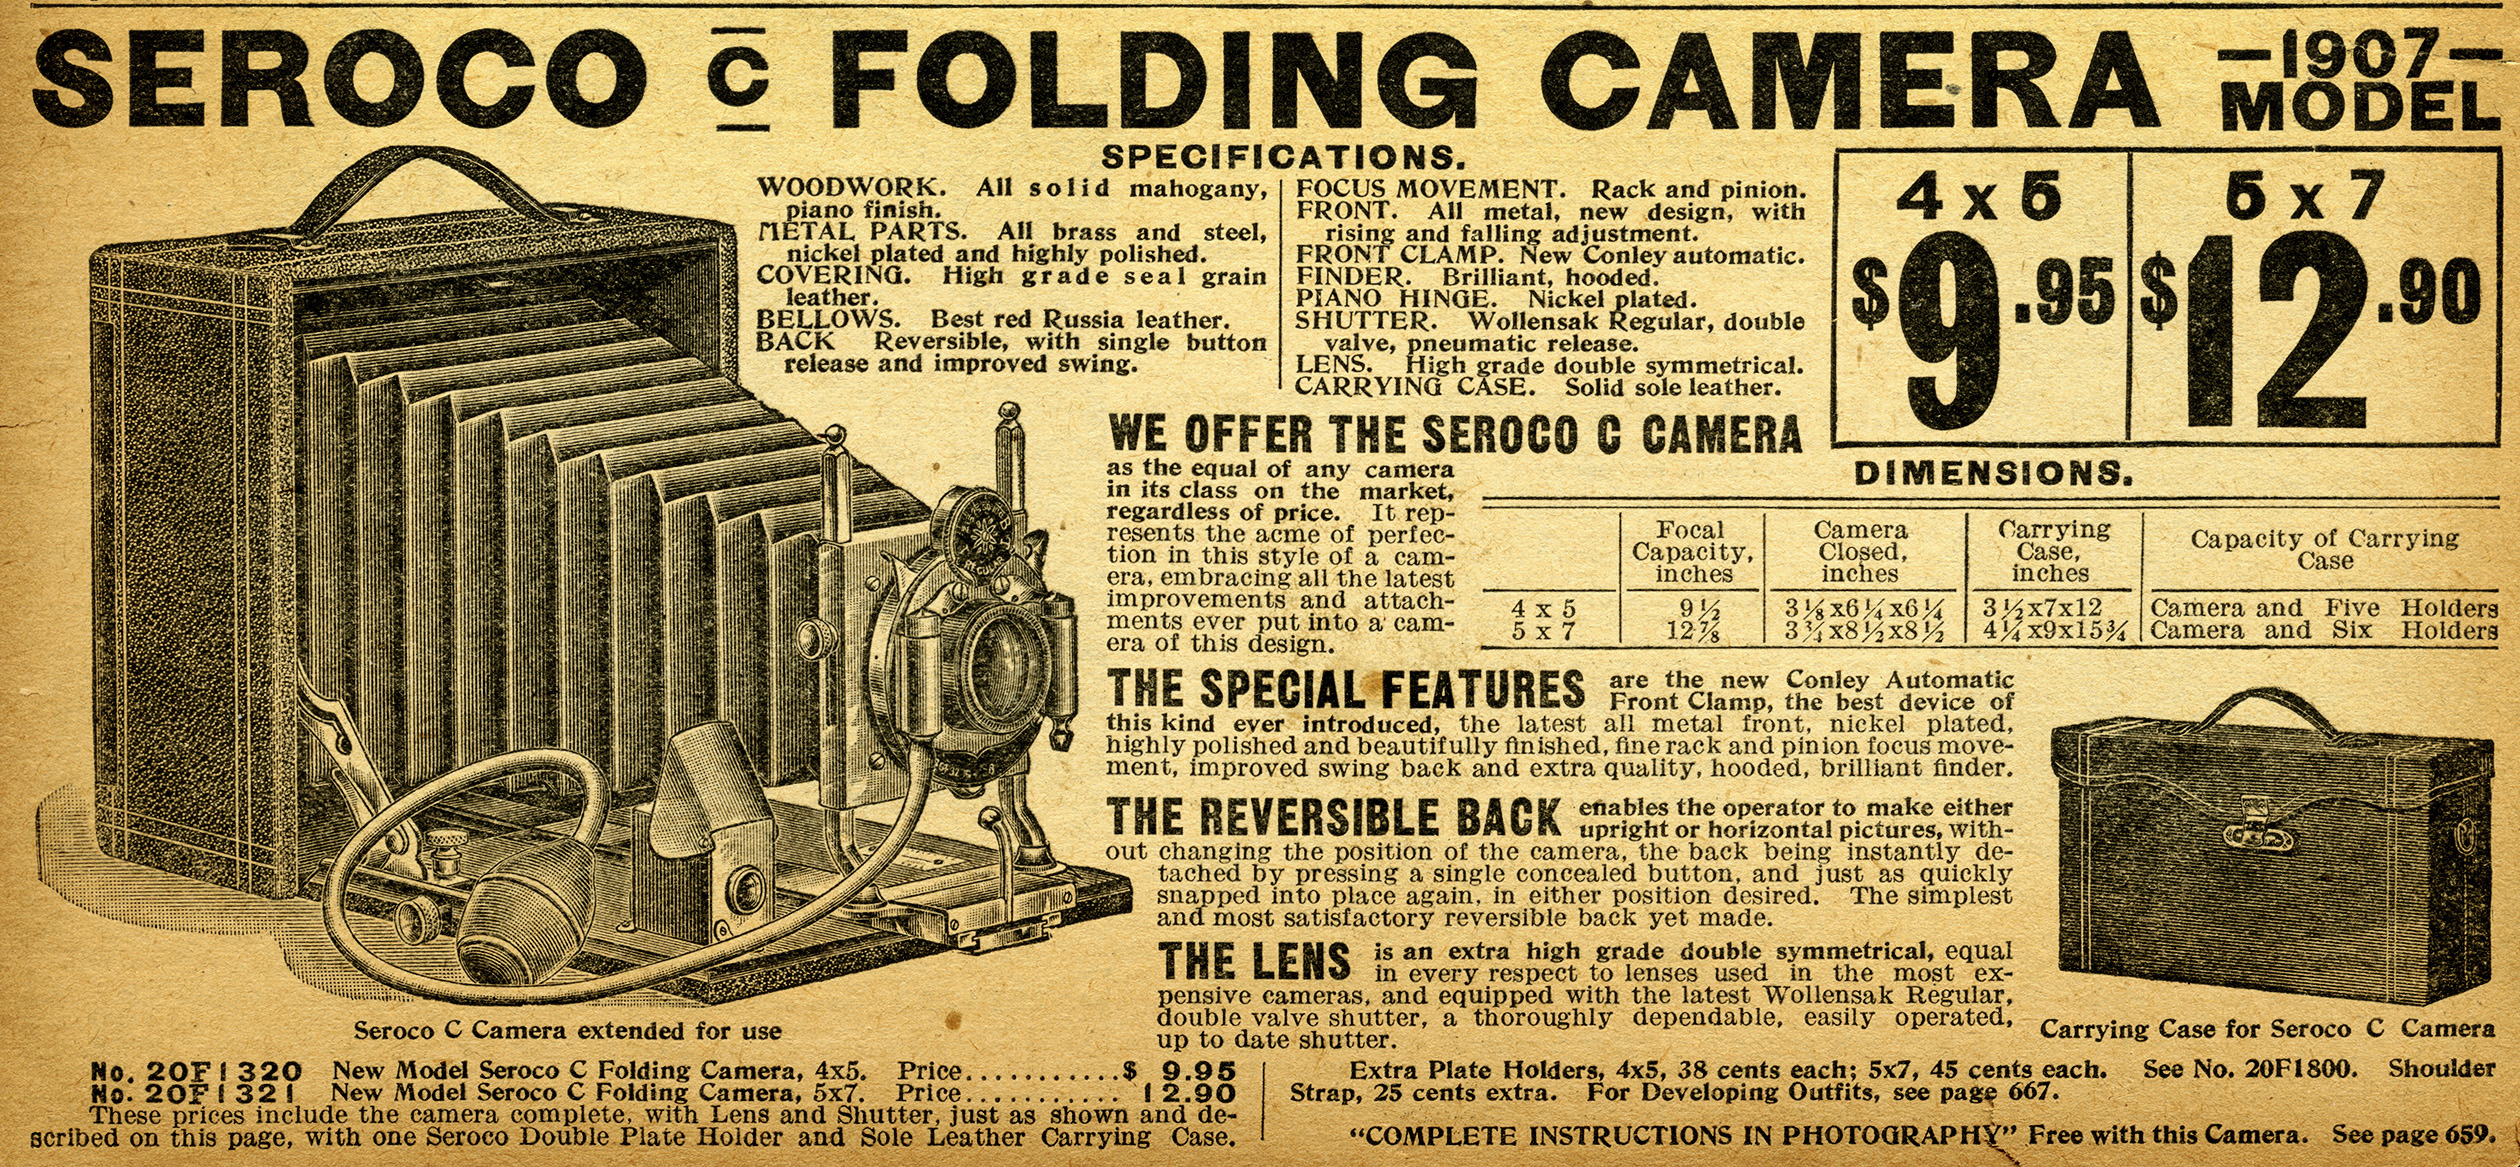 ... illustration, vintage camera clip art, seroco camera ad, 1907 camera